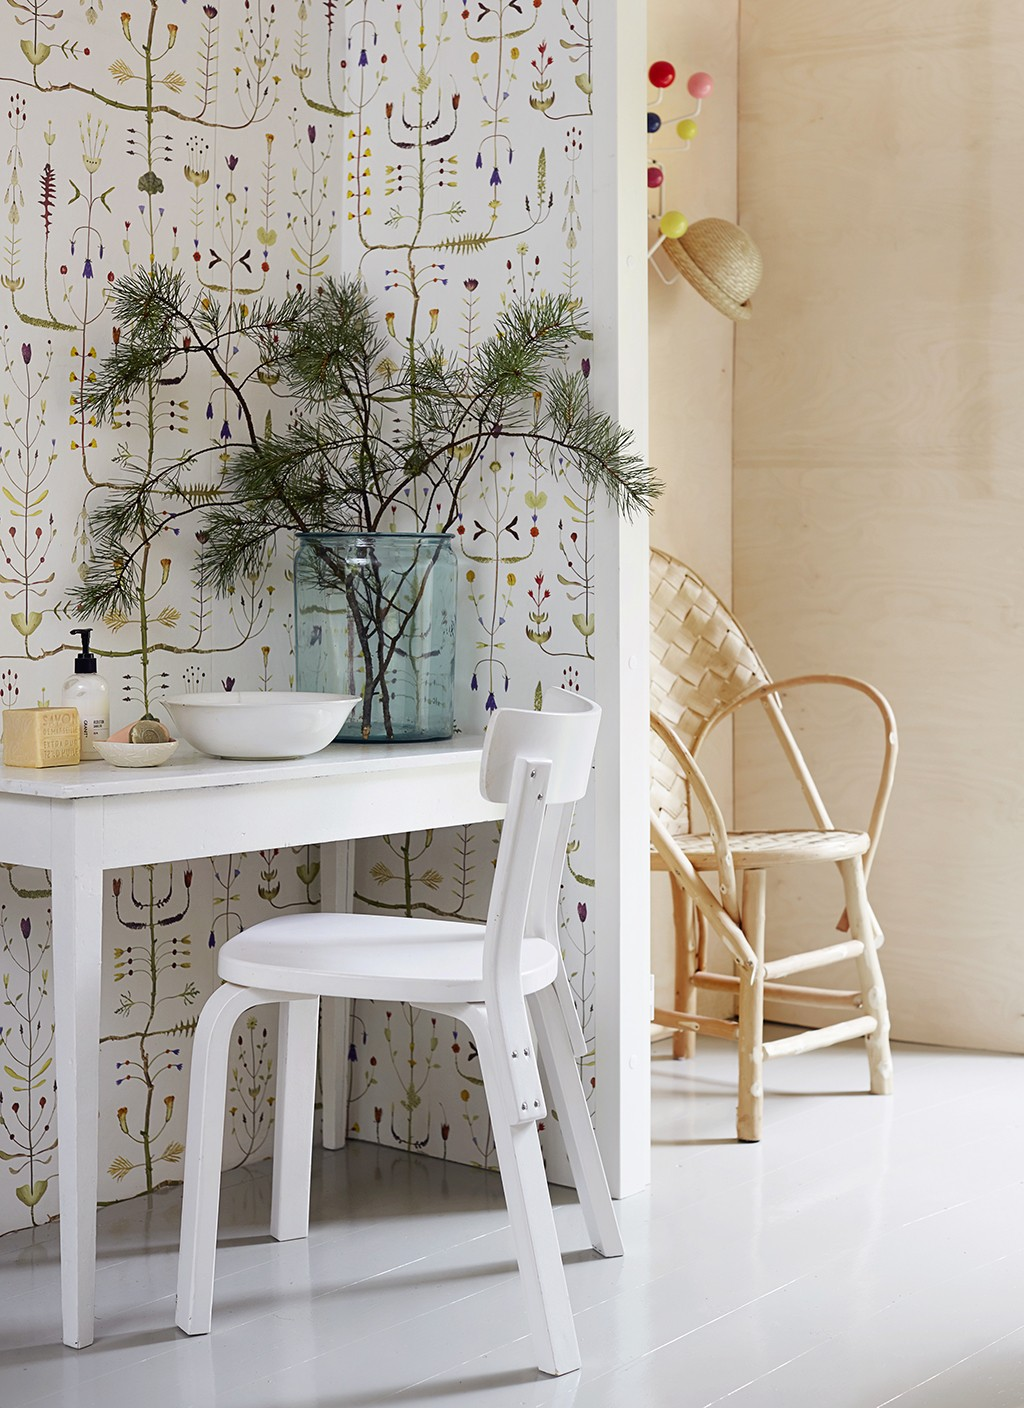 Blog collaboration at our summer place for Tikkurila by Susanna Vento